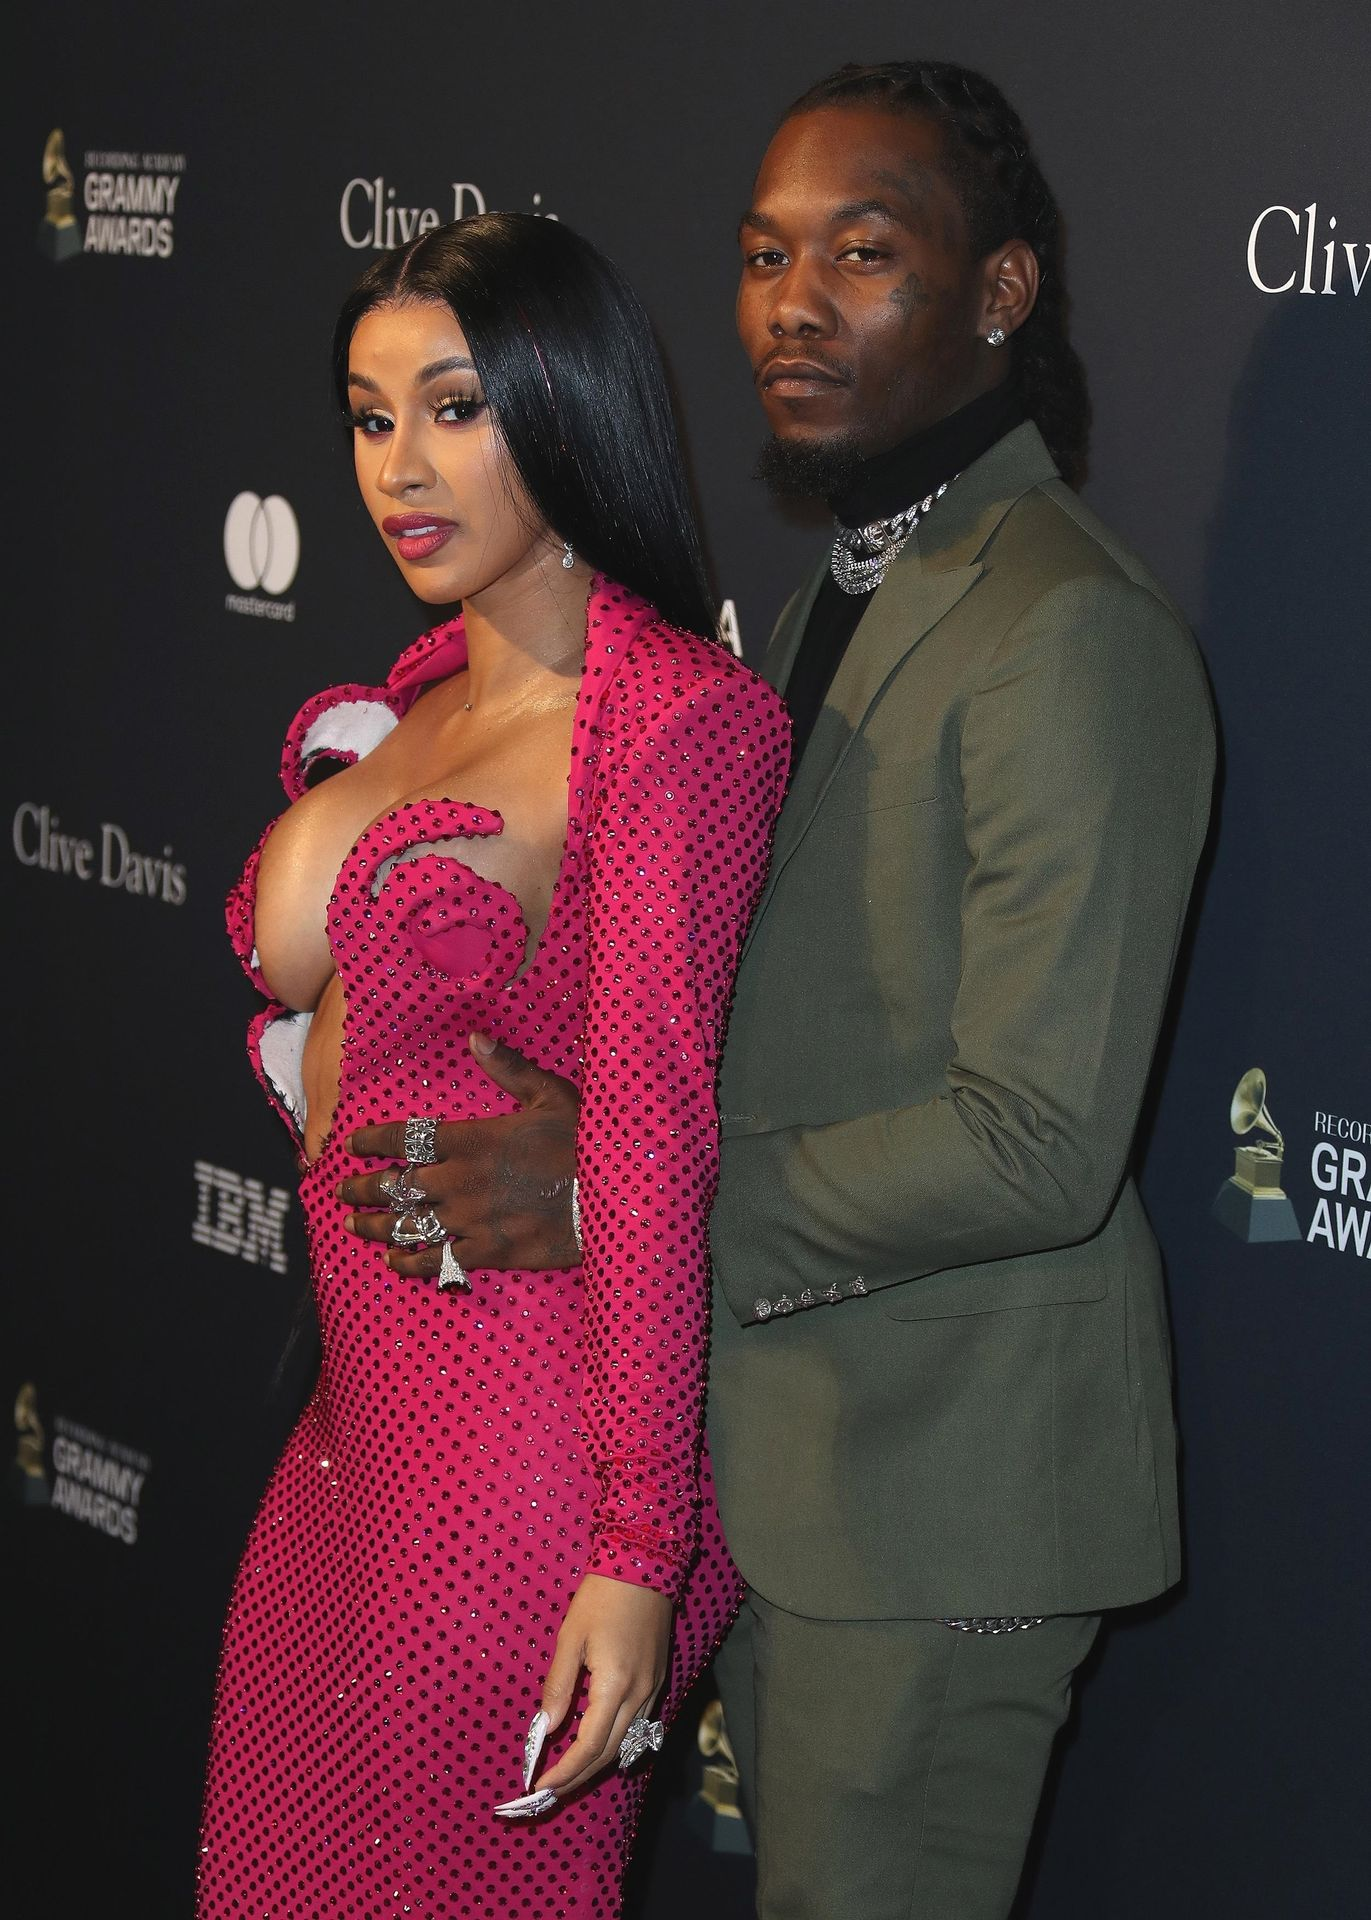 Offset Covers Cardi B's Boobs To Avoid Wardrobe Malfunction At Clive Davis Pre Grammy Party 0009